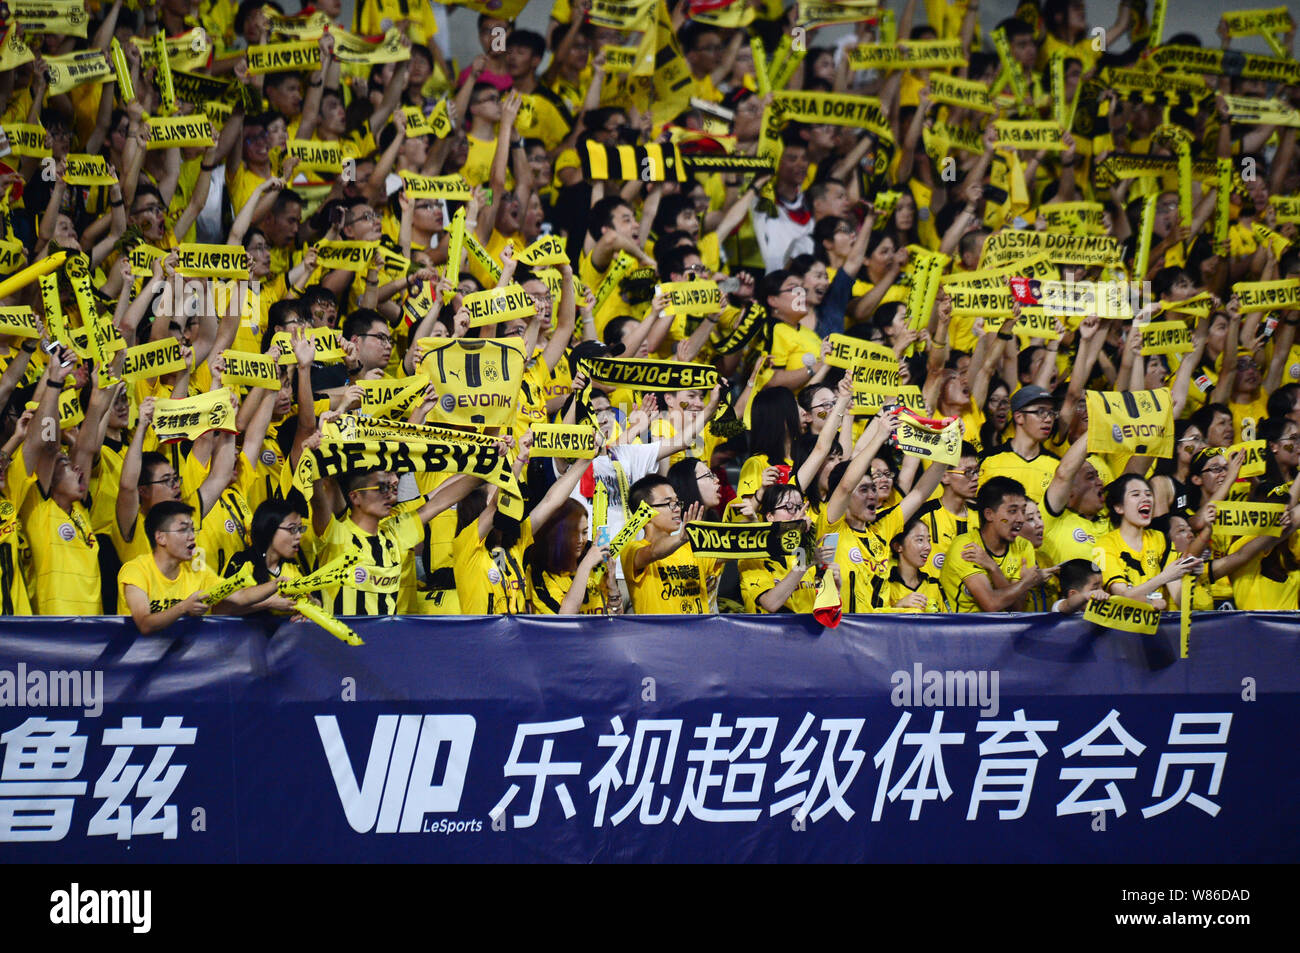 Chinese Football Fans Hold Up Banners And Shout Slogans To Show Support For Borussia Dortmund Competing Against Manchester United During The Shanghai Stock Photo Alamy